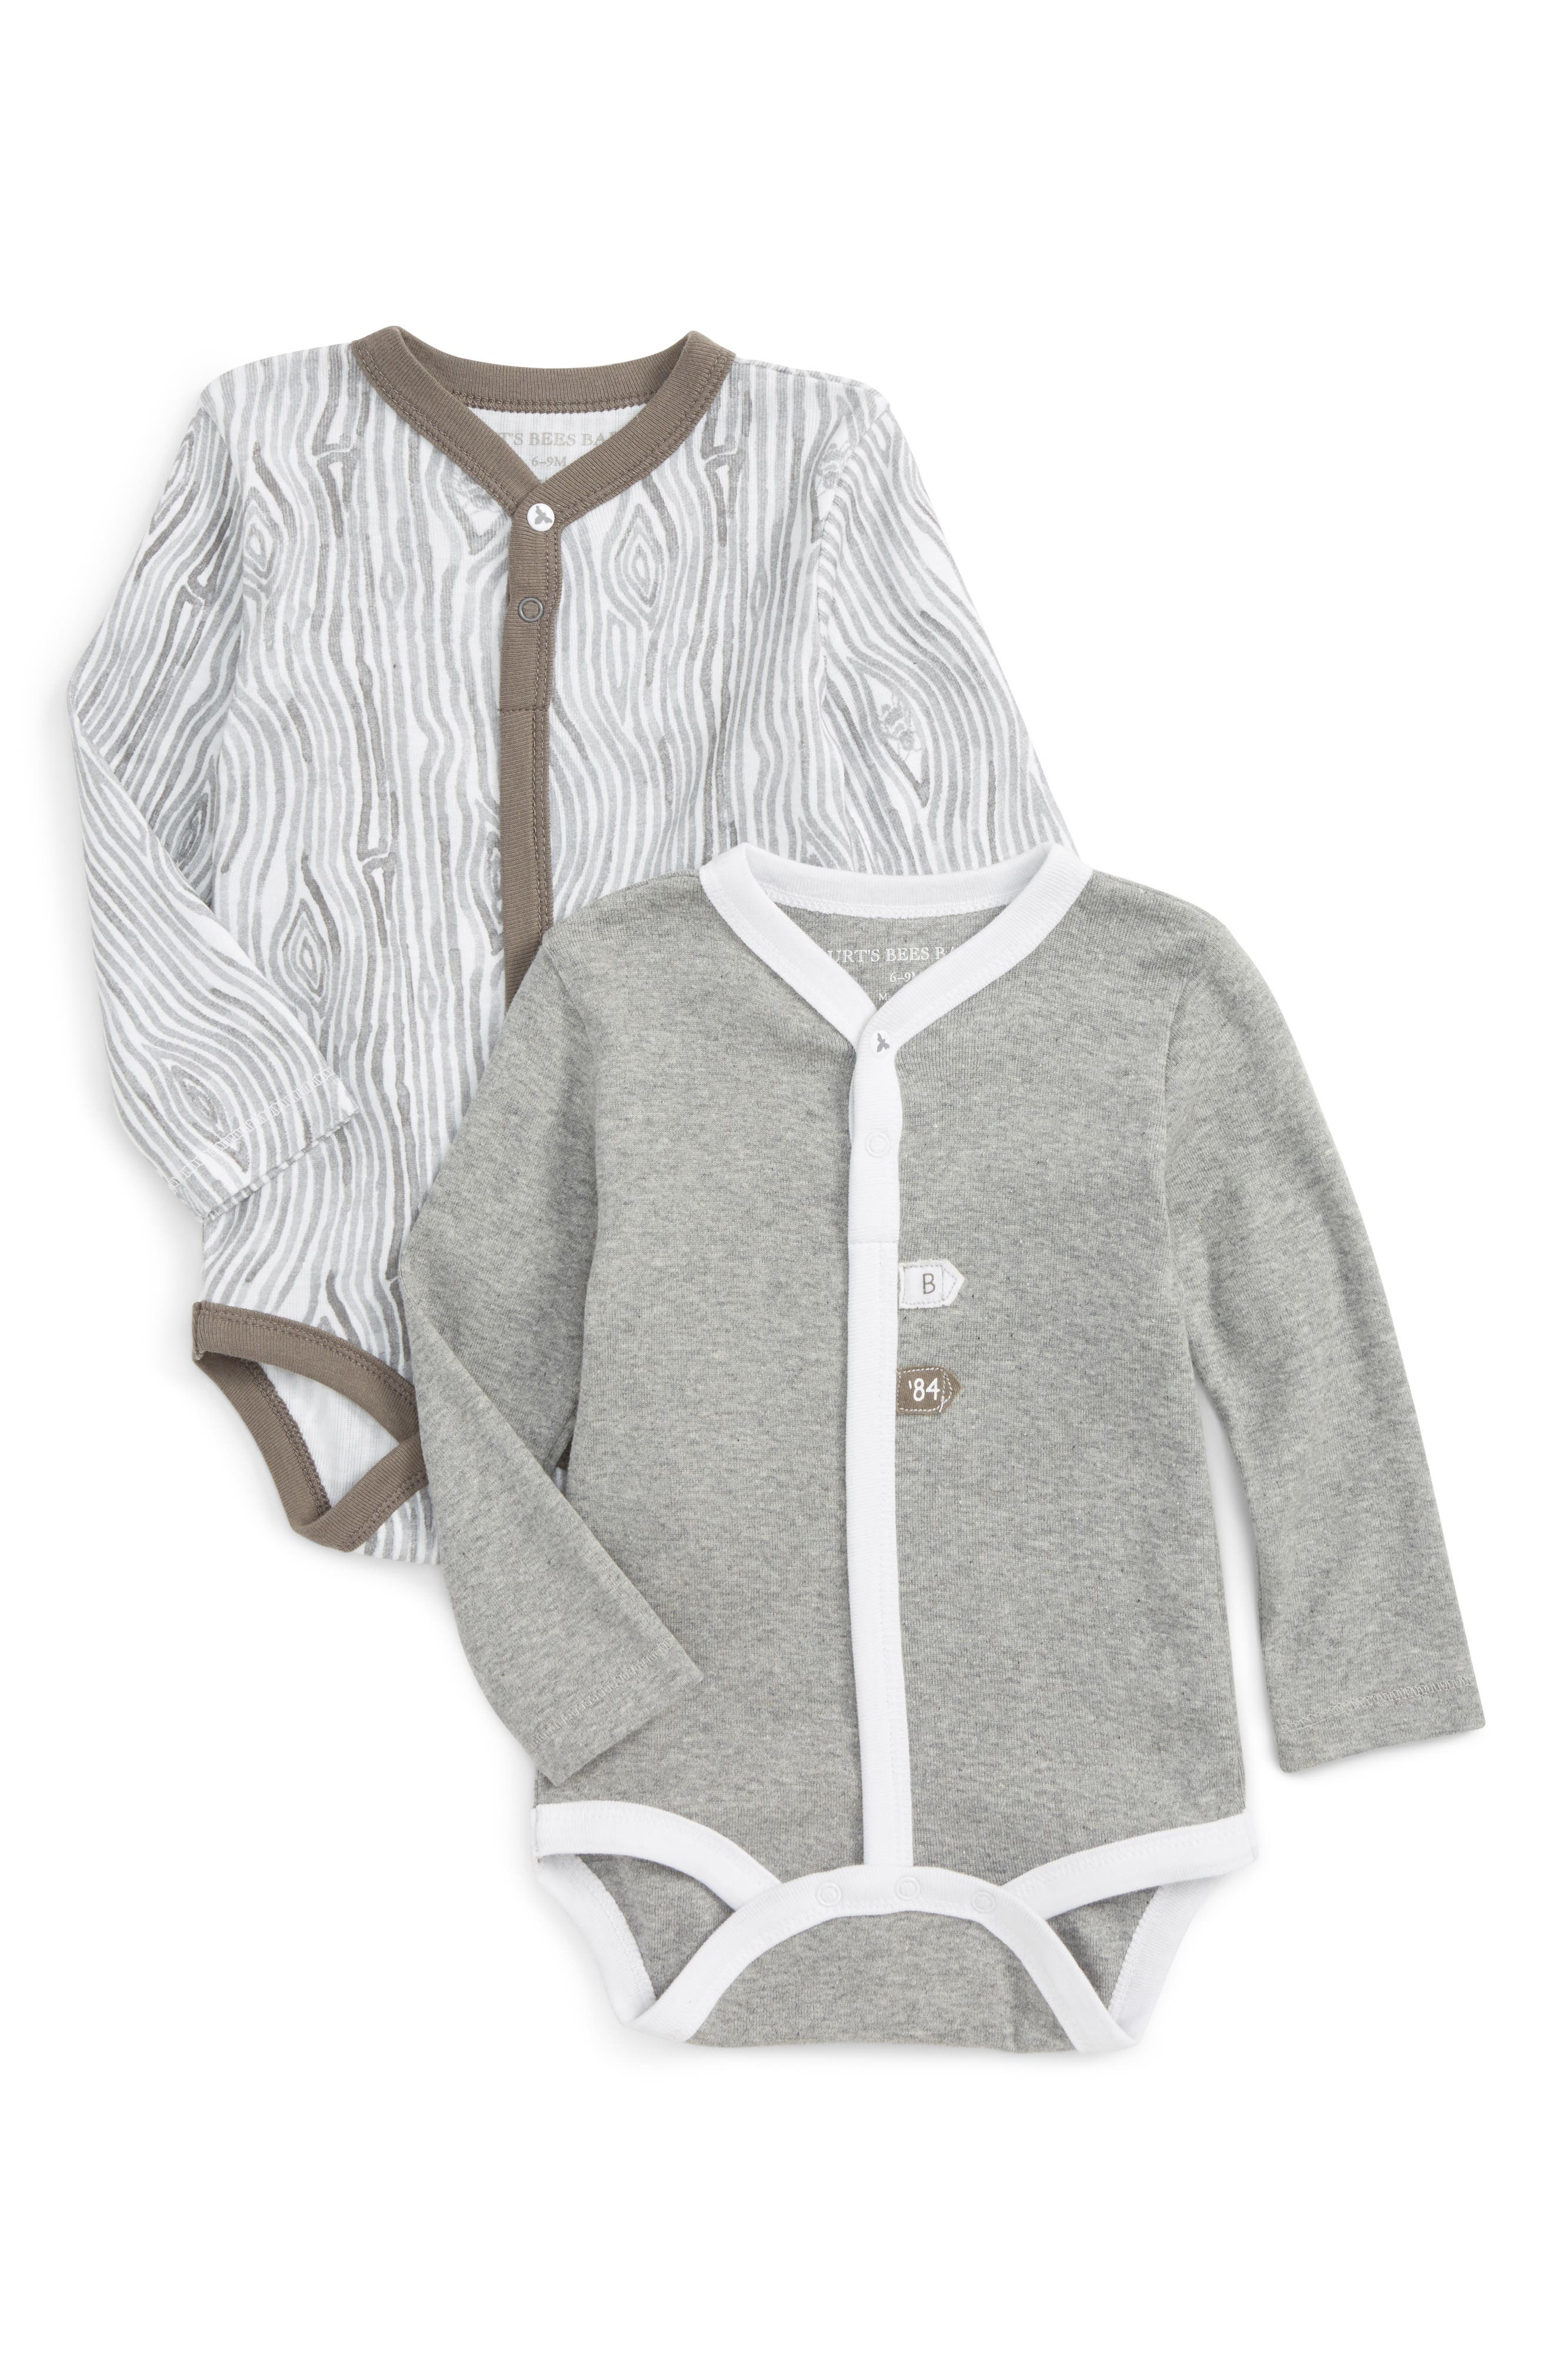 Alternate Image 1 Selected - Burt's Bees Baby 2-Pack Print Organic Cotton Bodysuits (Baby)